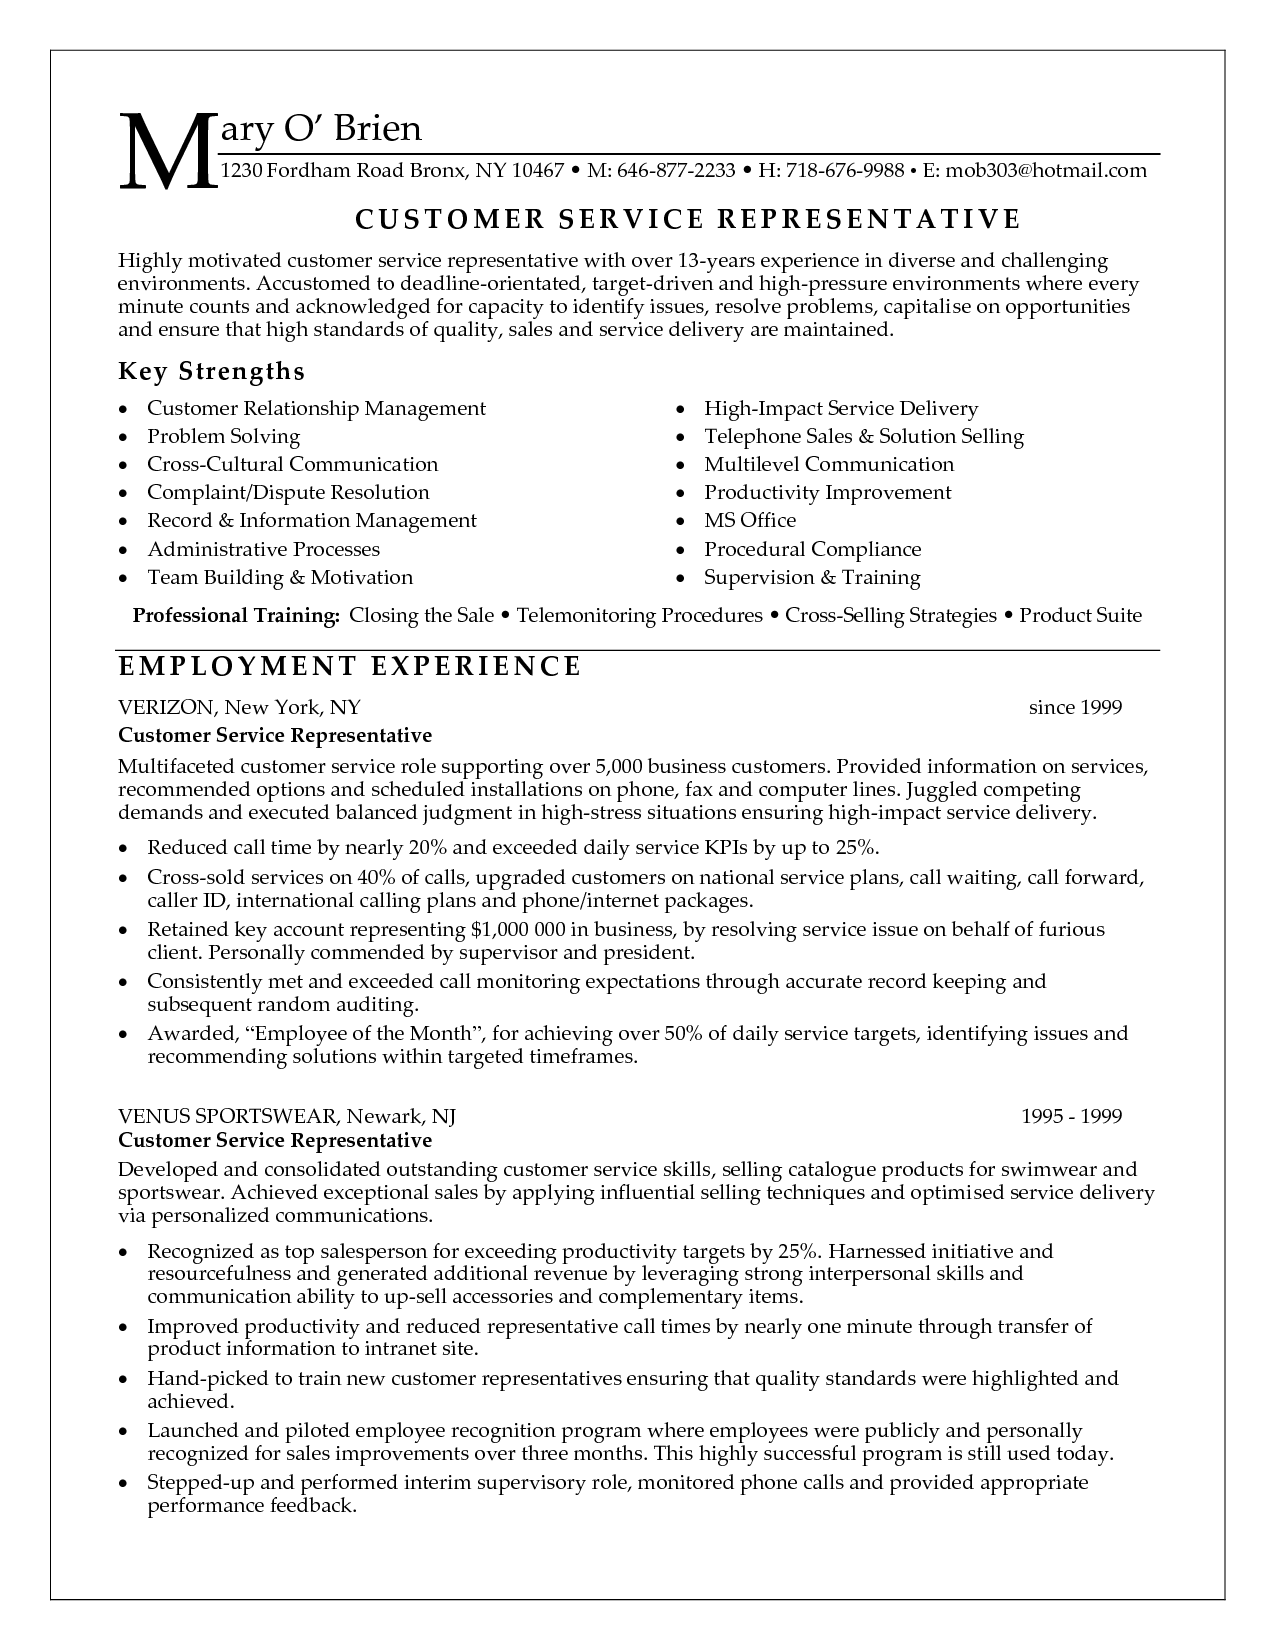 Copy And Paste Resume Templates 71581039 1275×1650  Letter  Pinterest  College